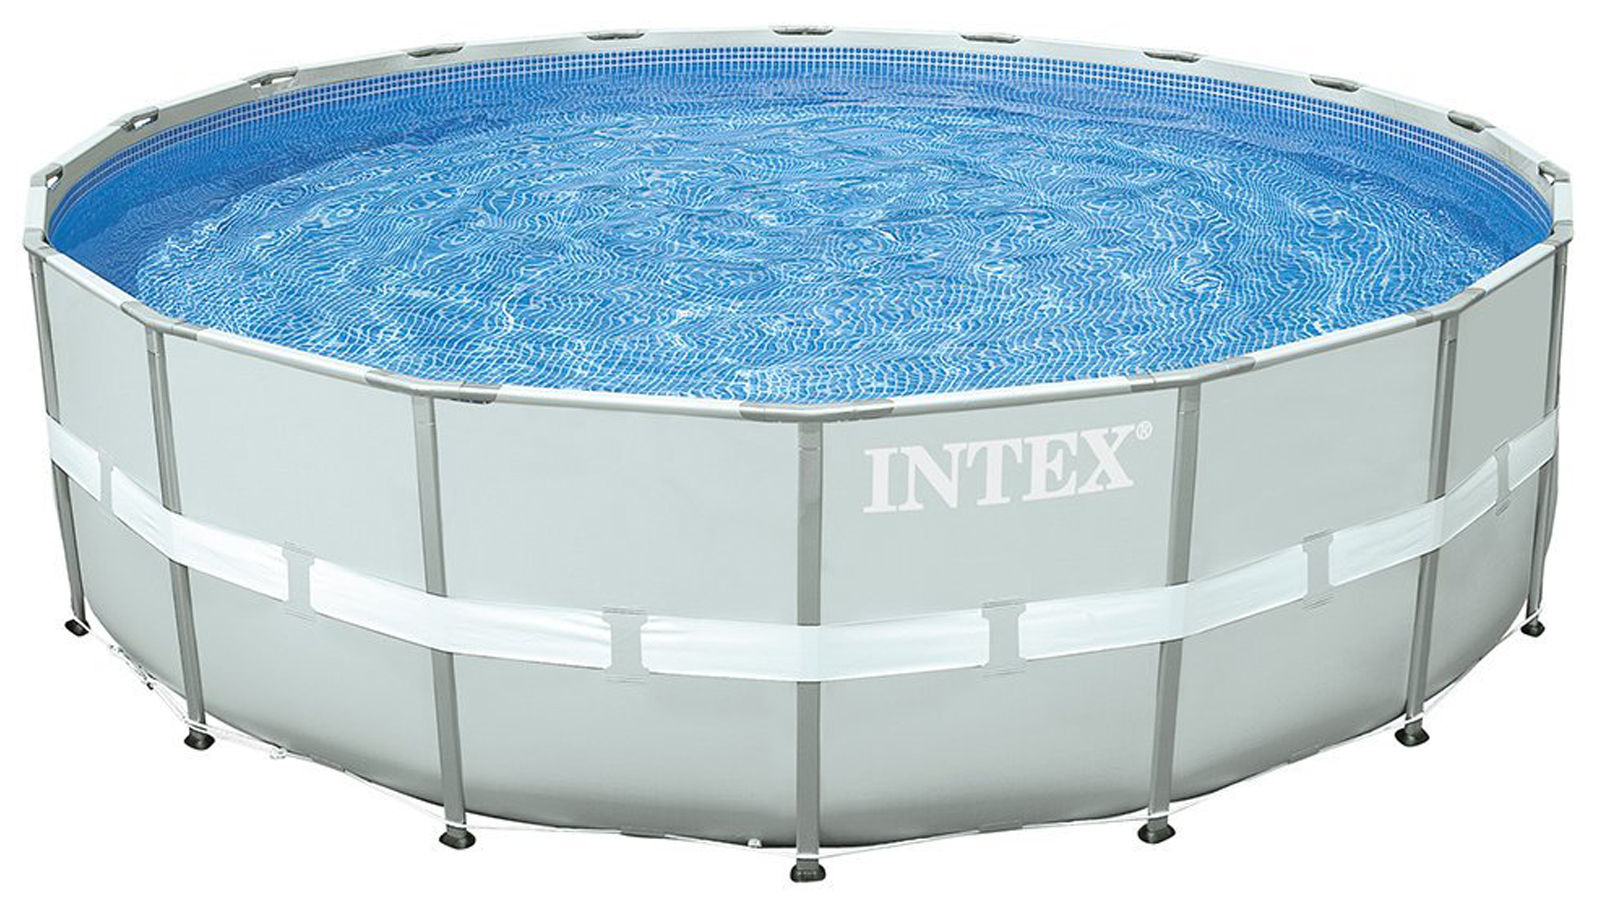 18 39 X52 Round 28331eh Intex Ultra Frame Above Ground Swimming Pool Kit Ebay